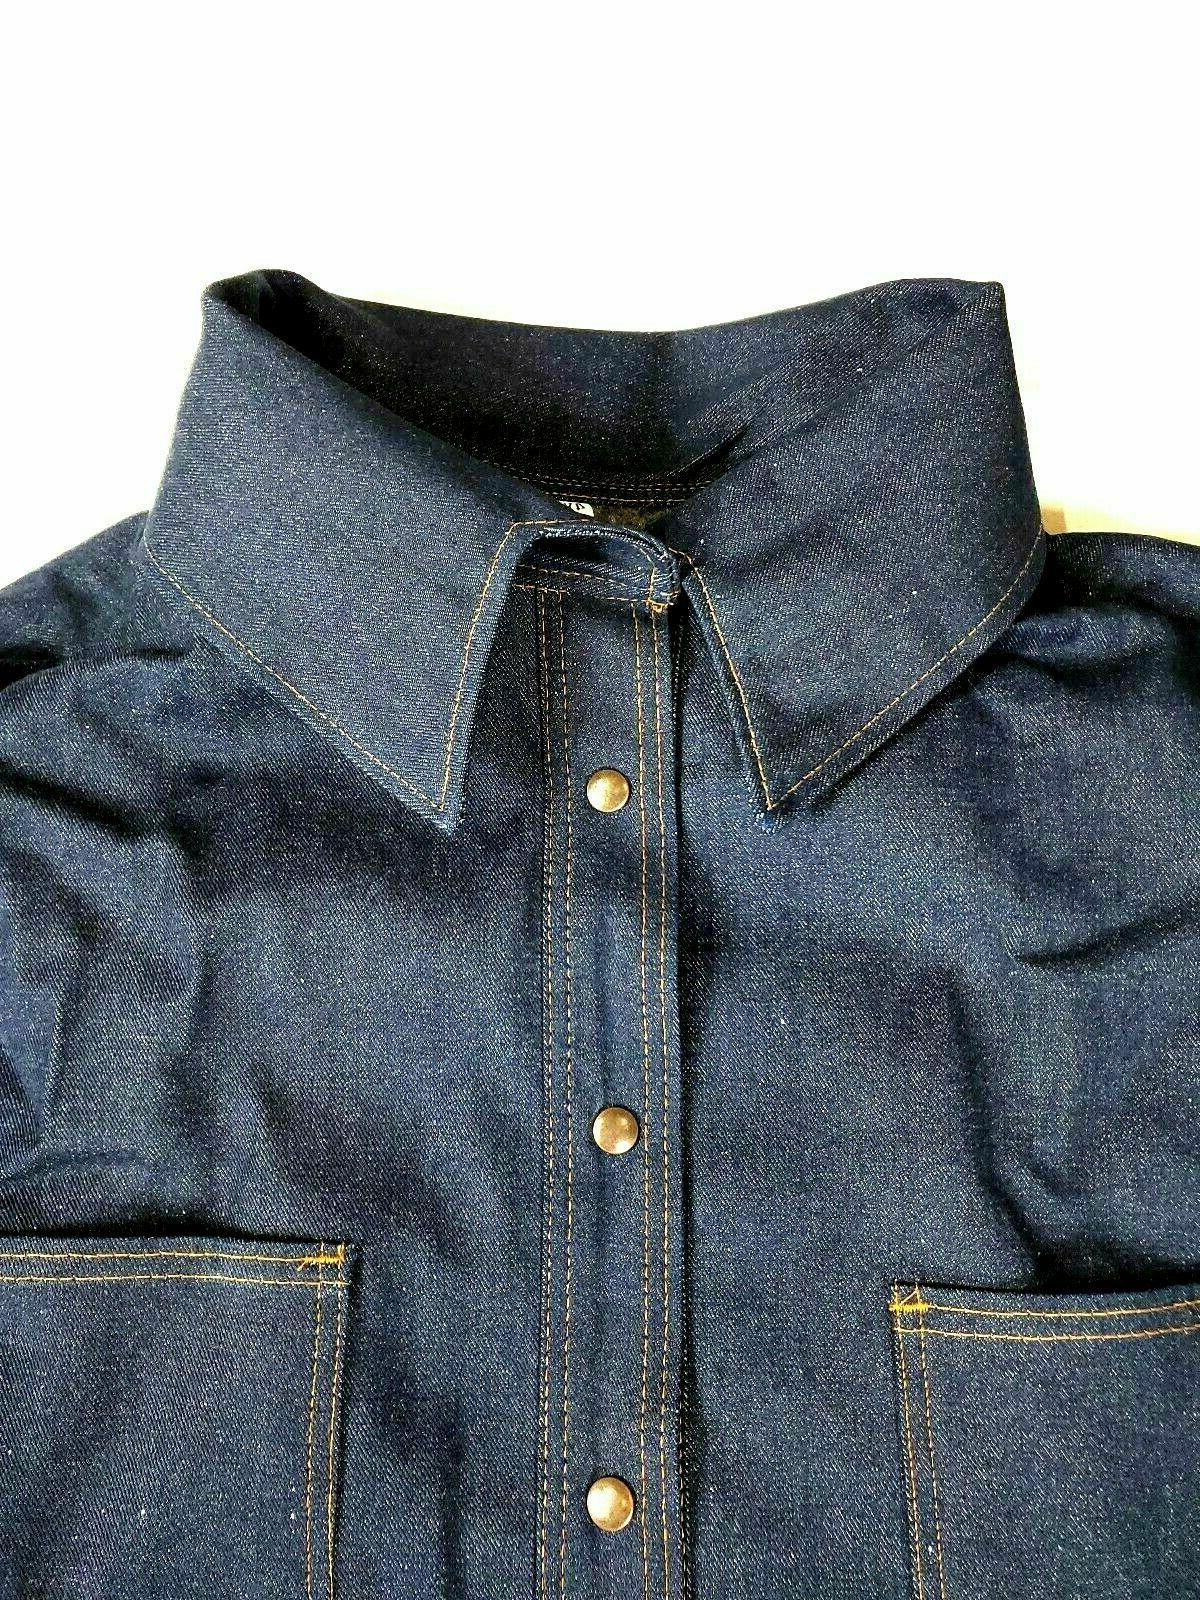 Denim Jacket Coat Heavy Blanket Lined Chore Field Barn 4 poc